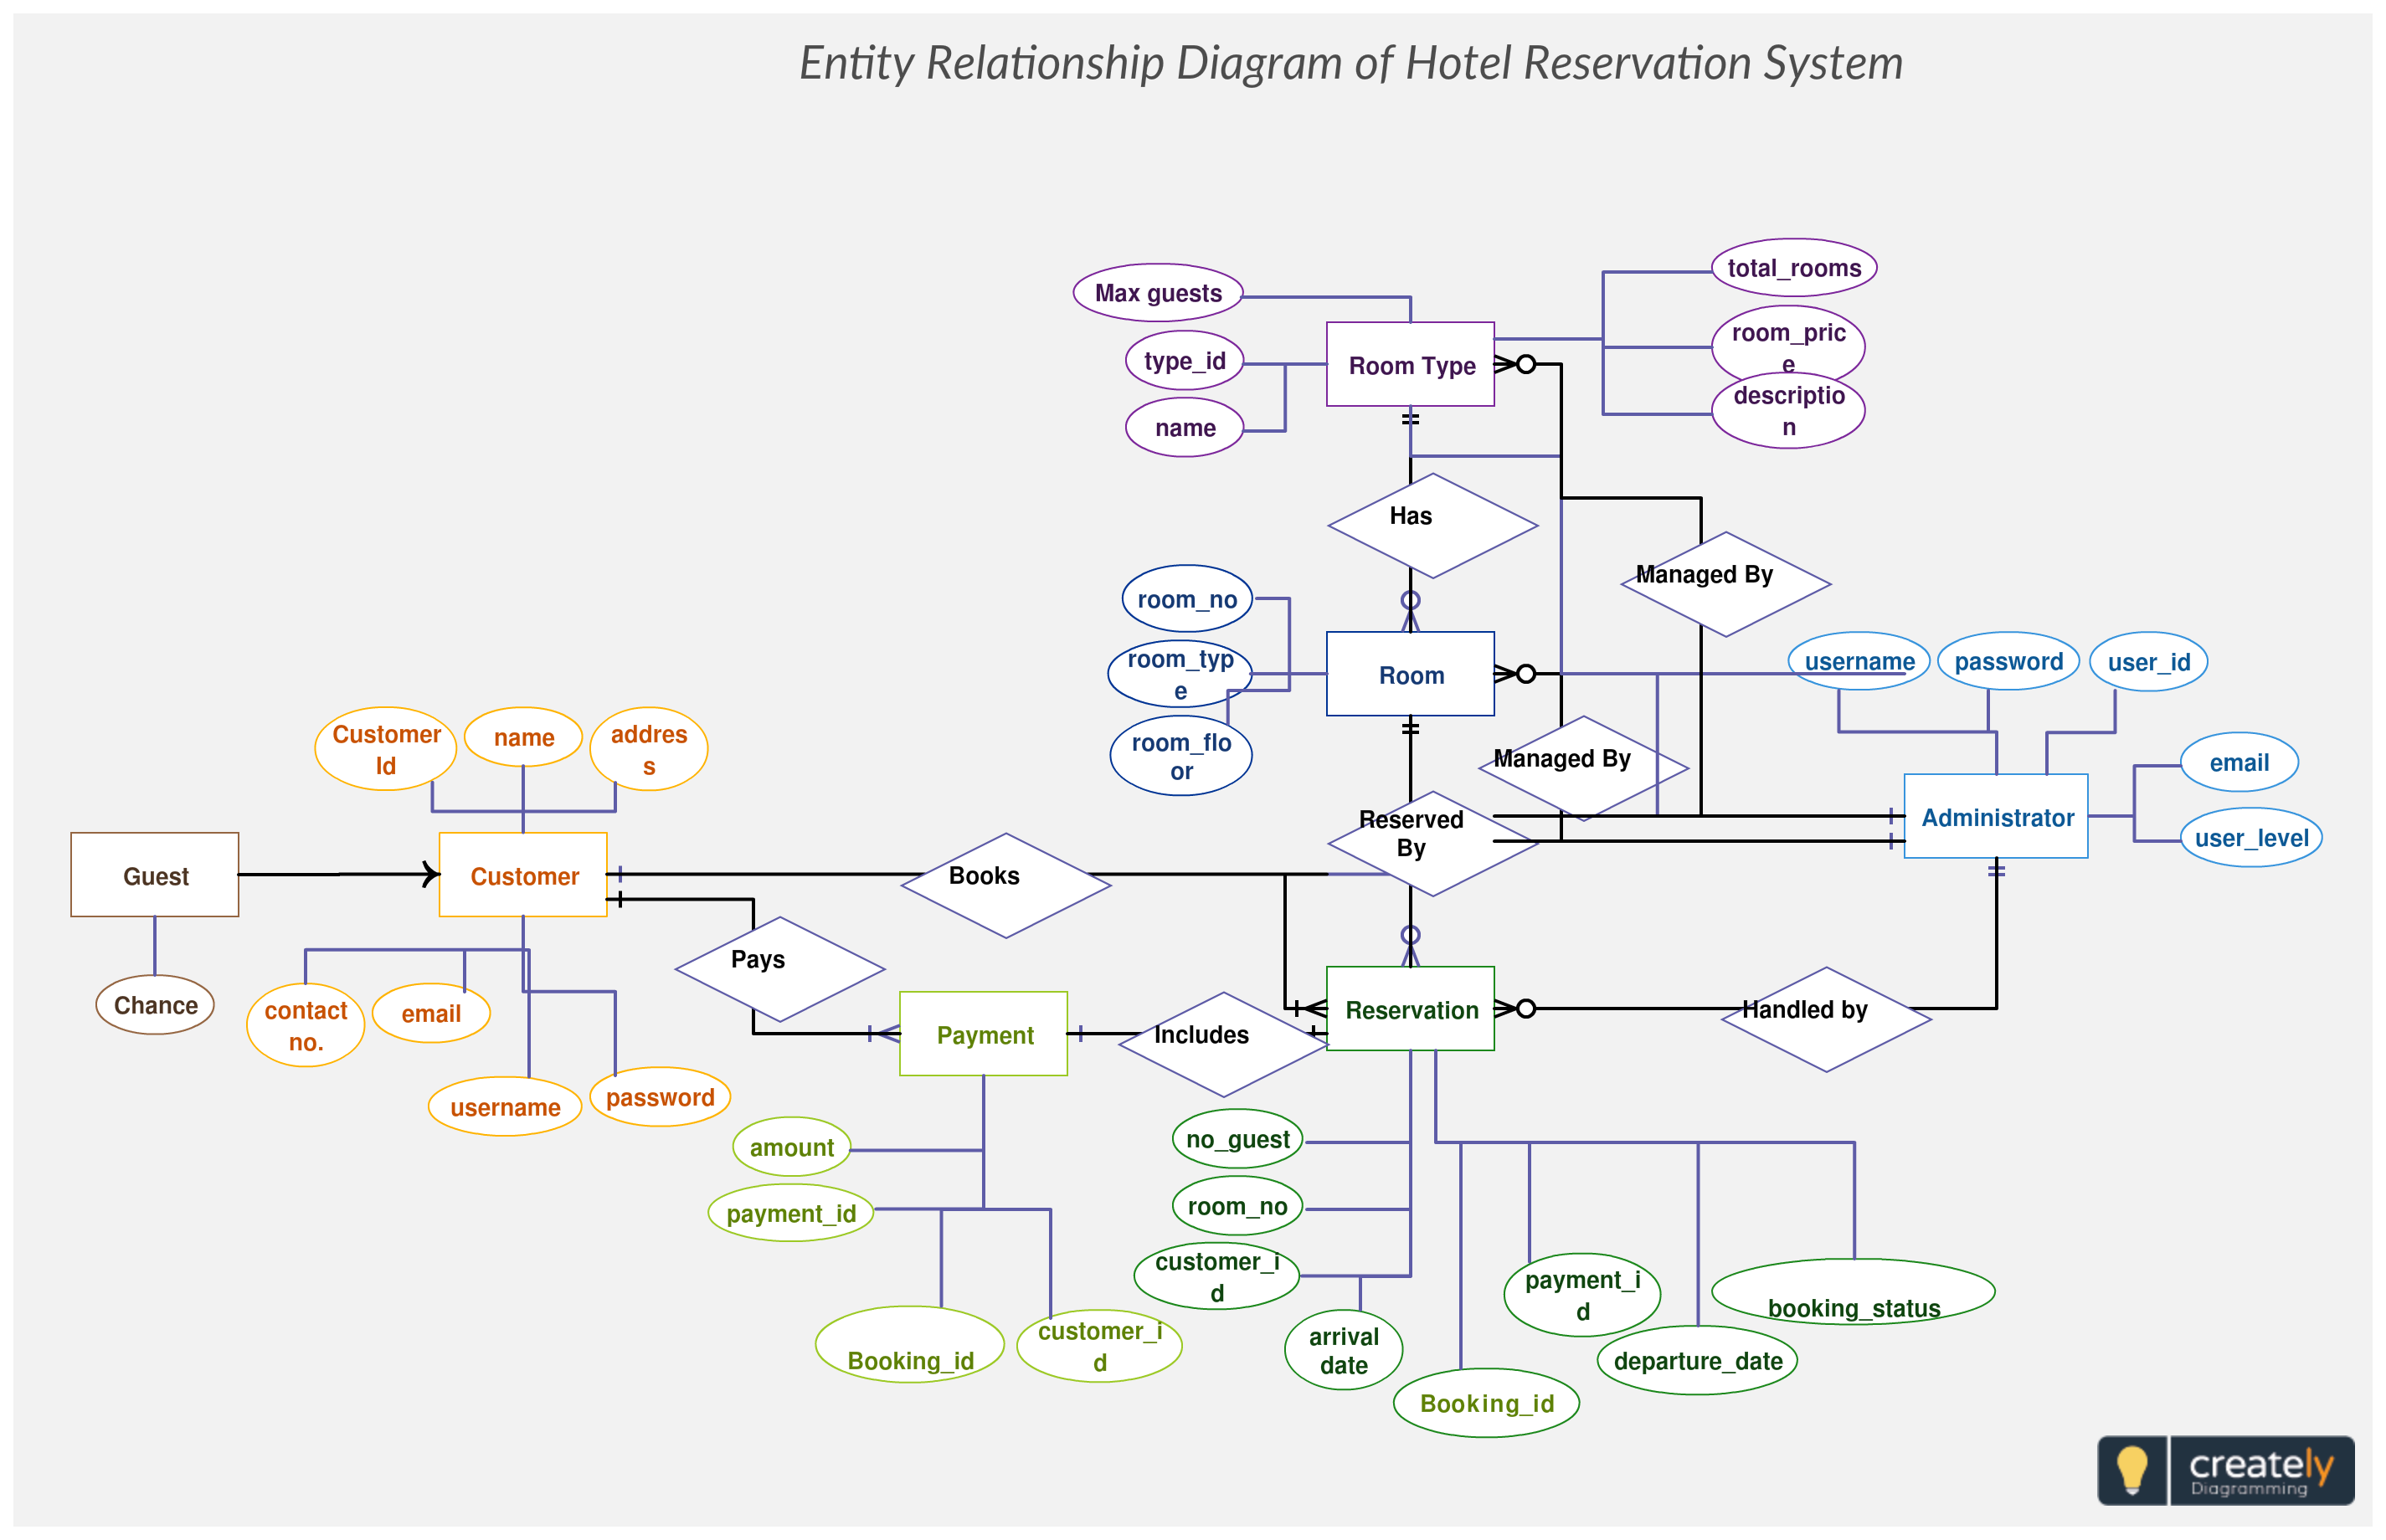 Hotel Reservation System ER diagram maps out the data flow for a